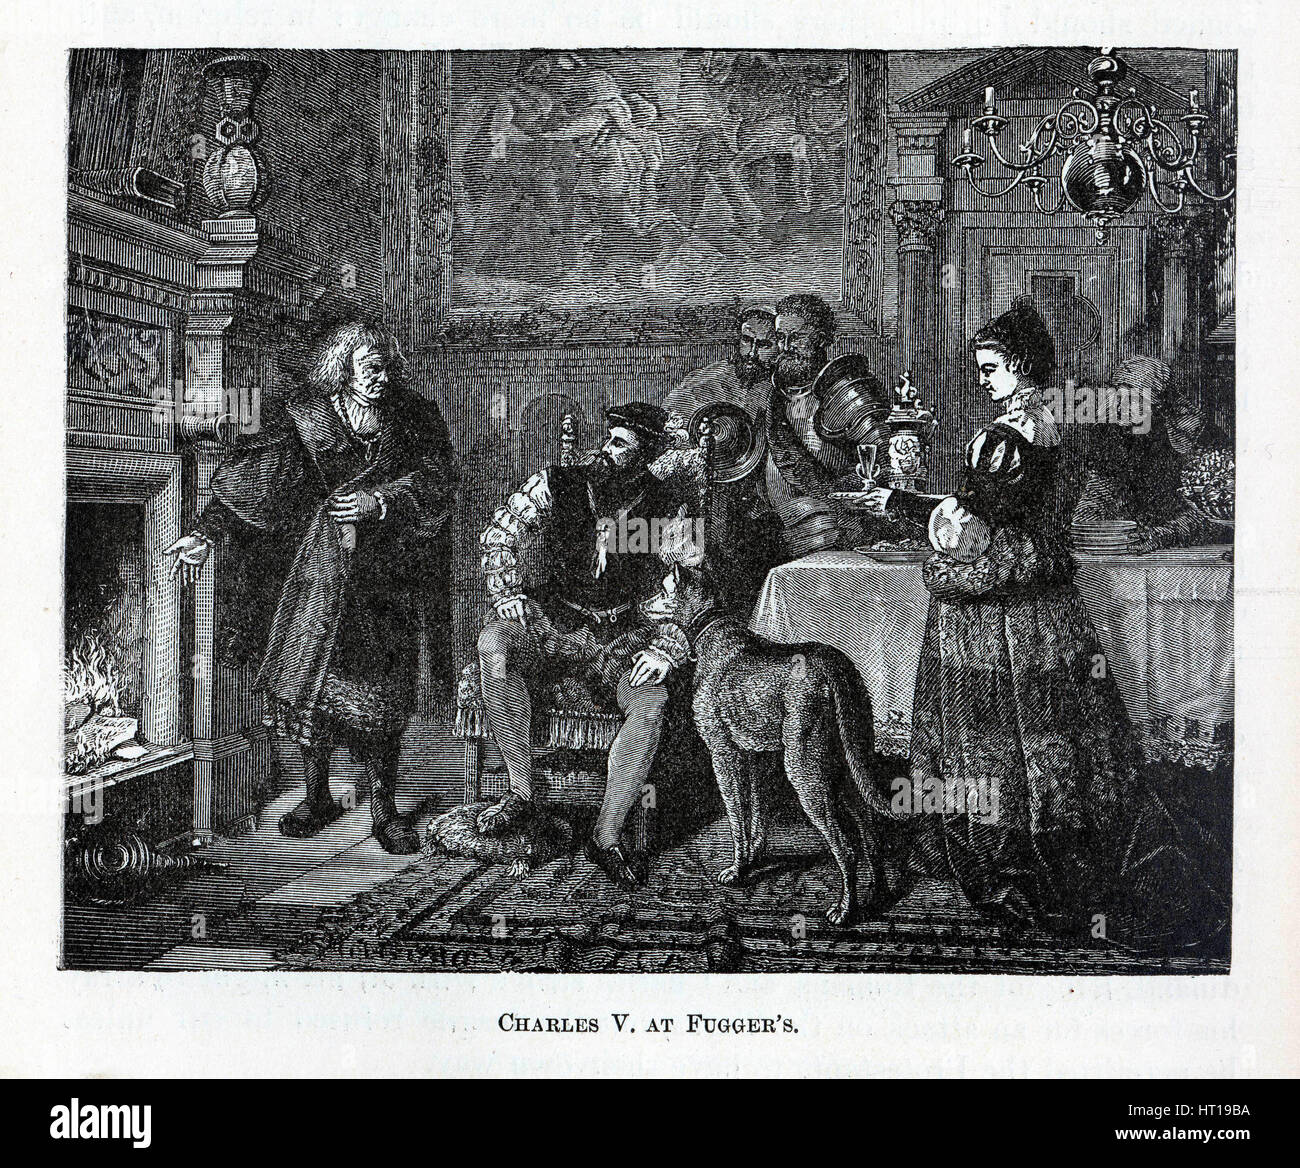 Charles V at Fugger's, 1882. Artist: Anonymous Stock Photo